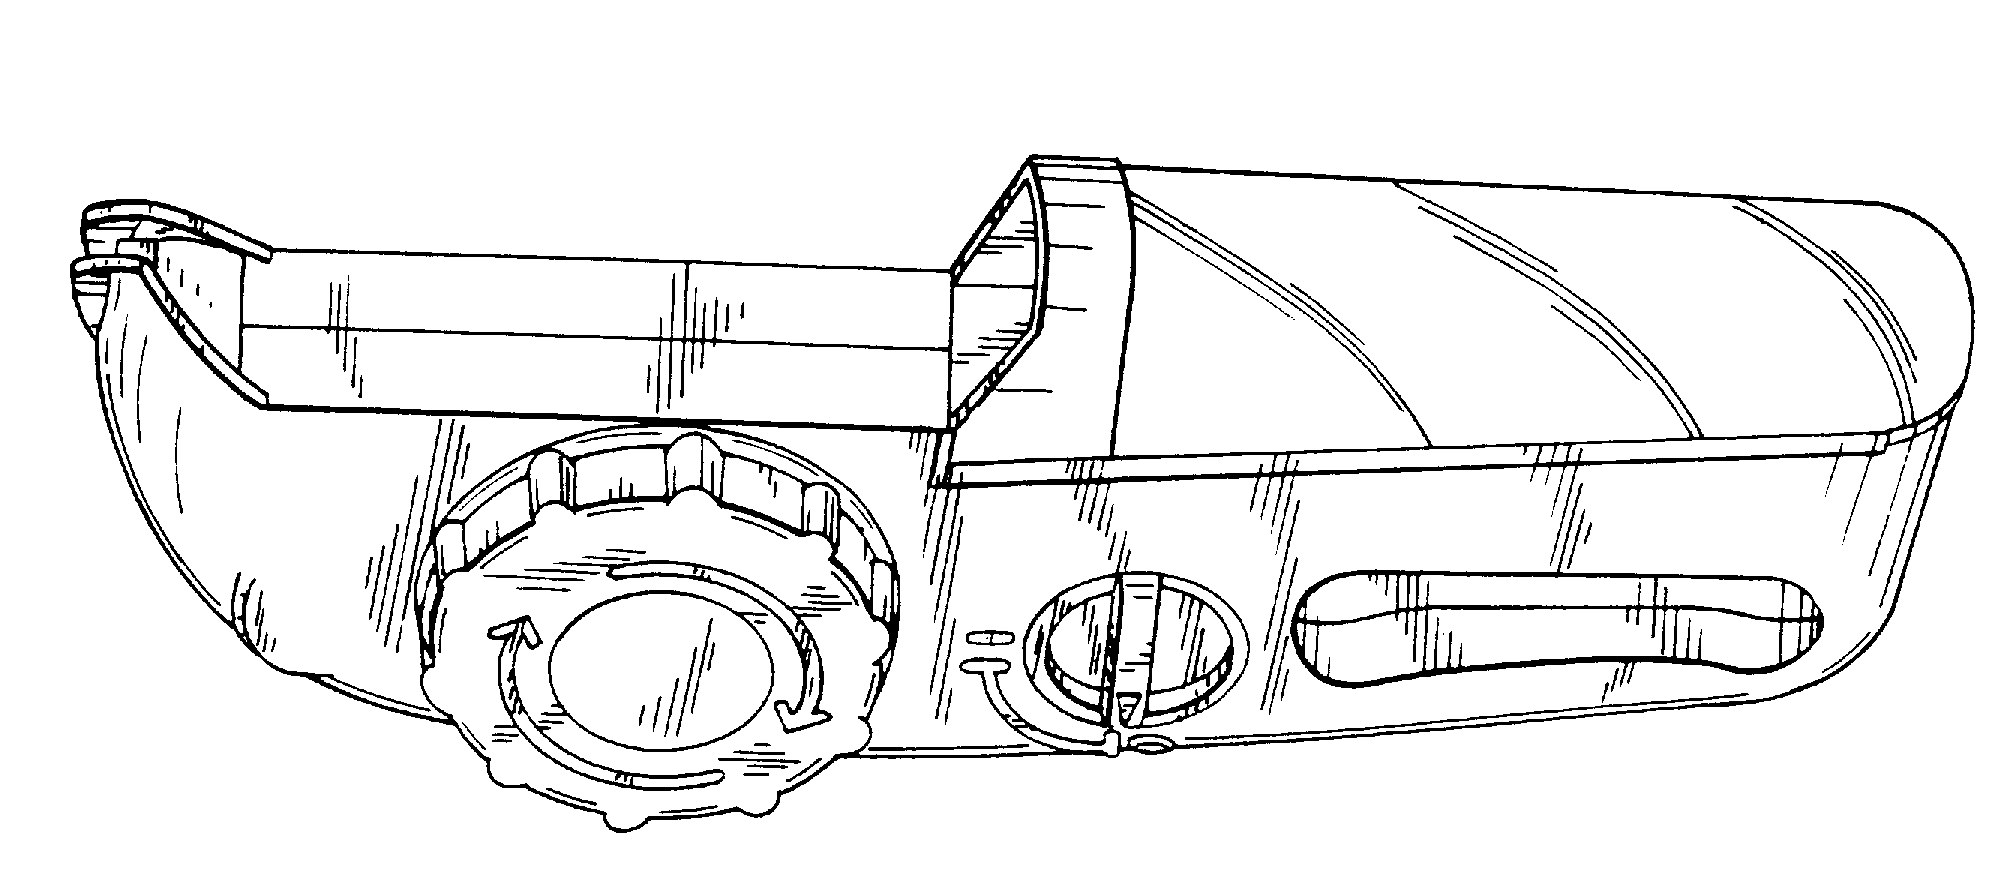 USD398053-1.png